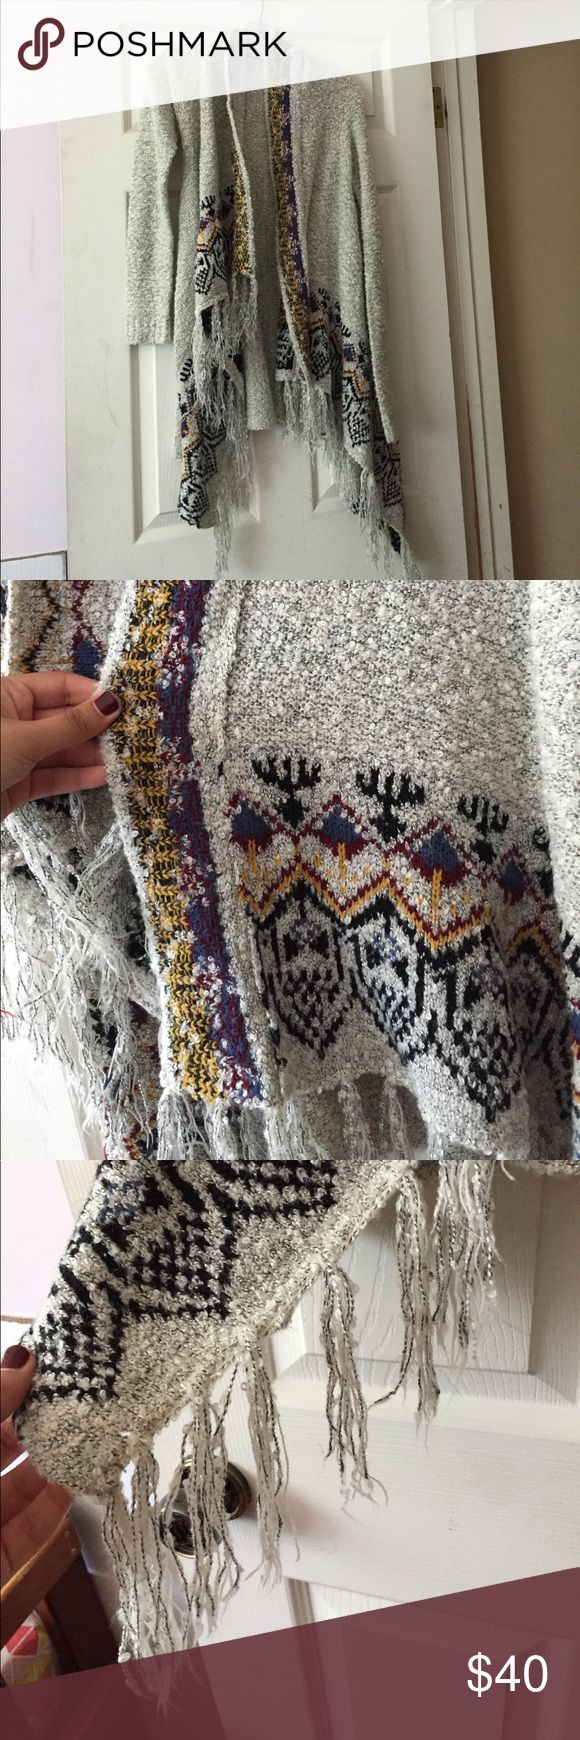 Knit Fringe Tribal Print Cardigan Excellent condition! Size small. Urban Outfitters Sweaters Cardigans